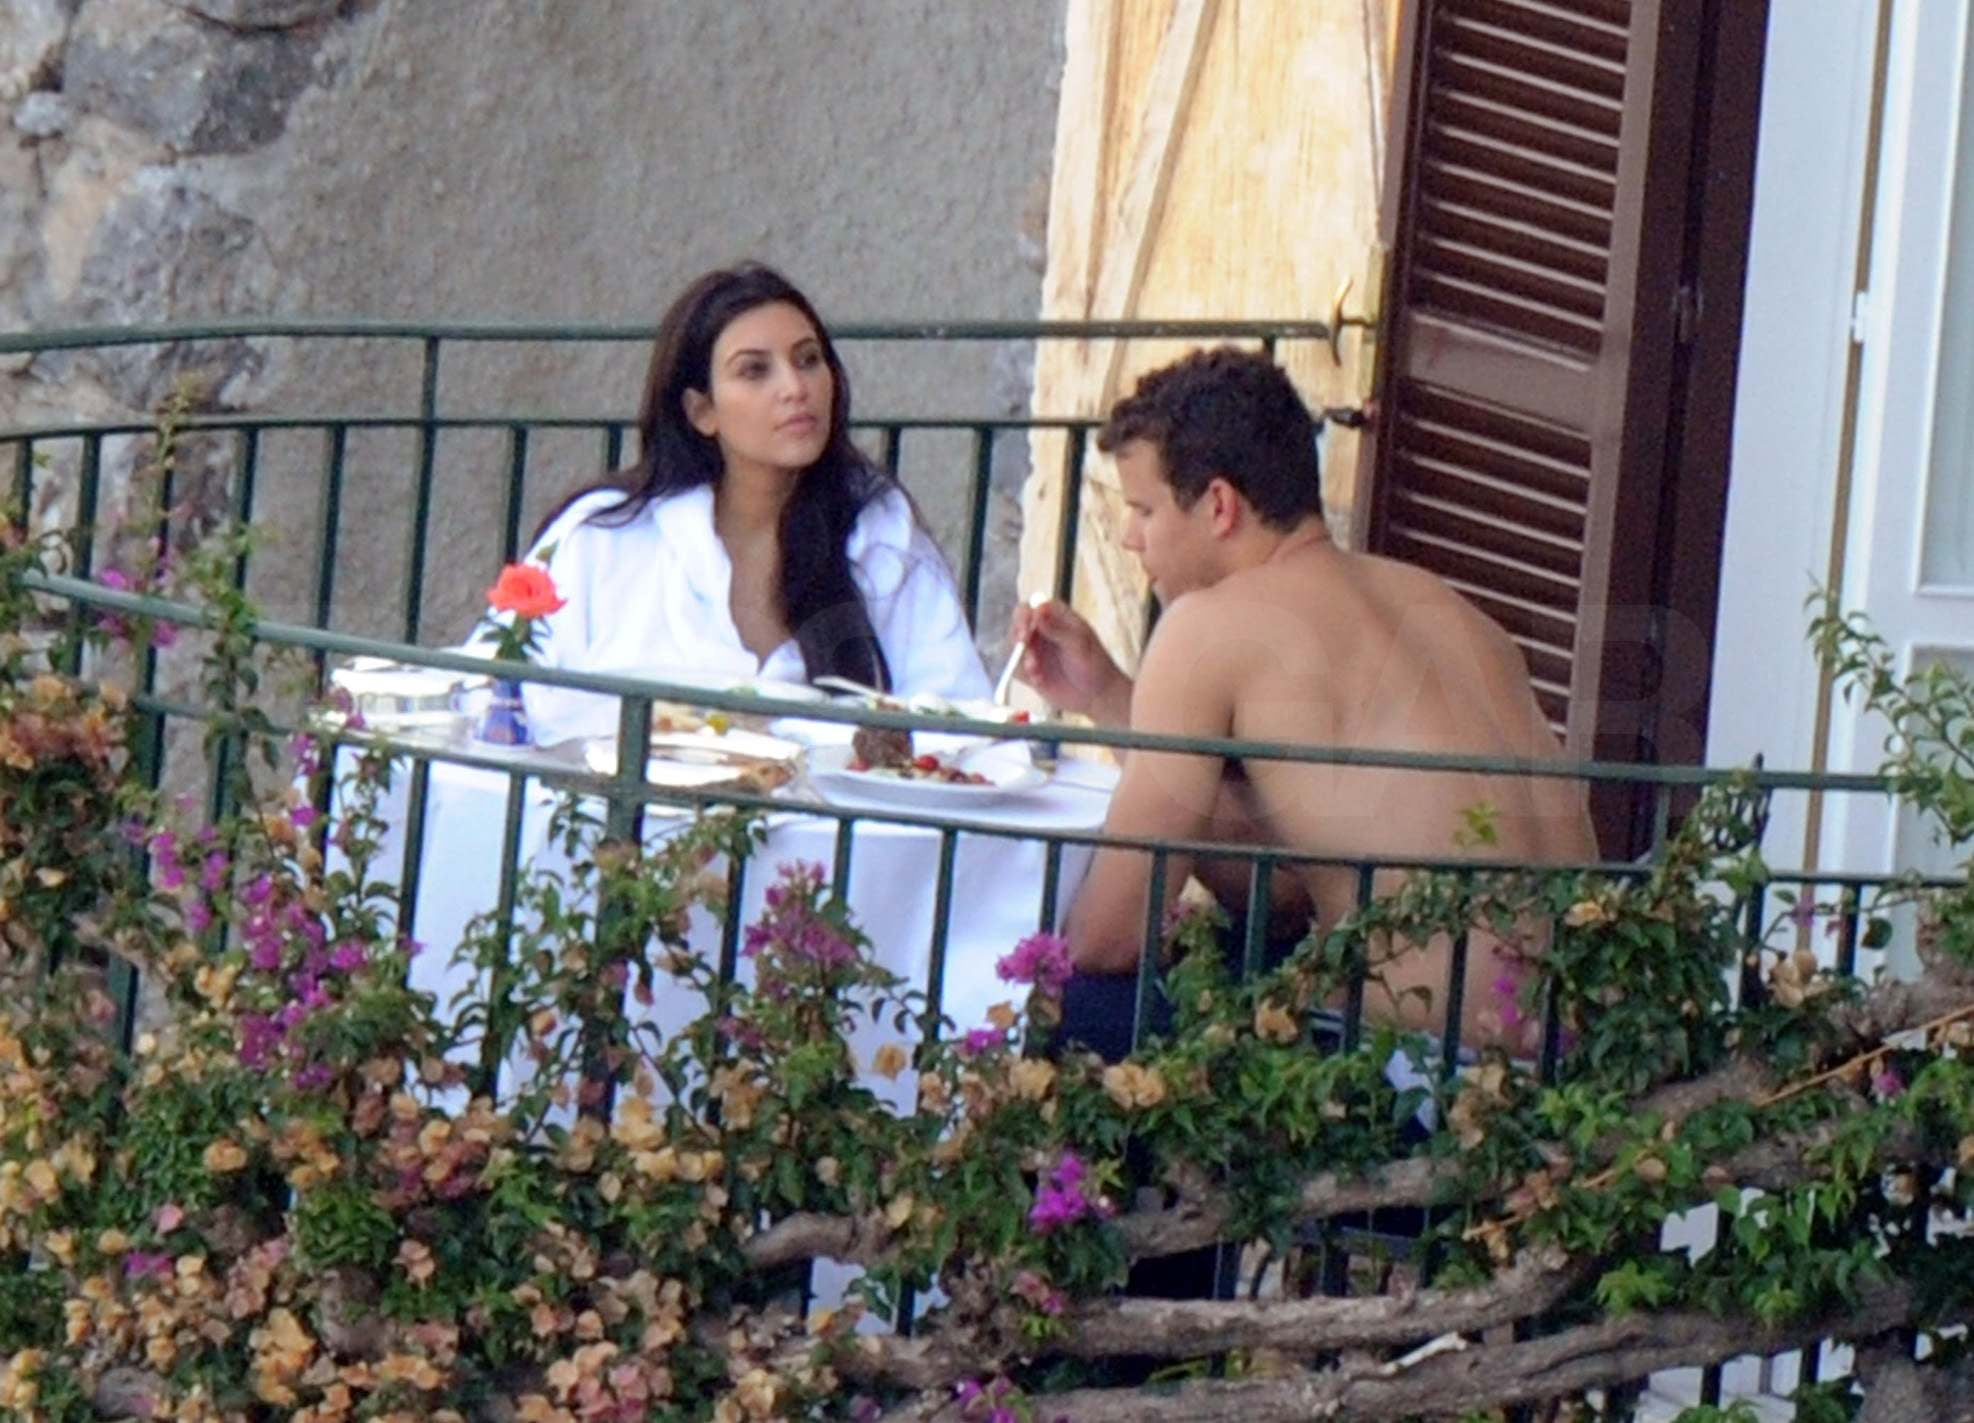 Kim Kardashian and Kris Humphries took a trip to Italy after their August 2011 nuptials.